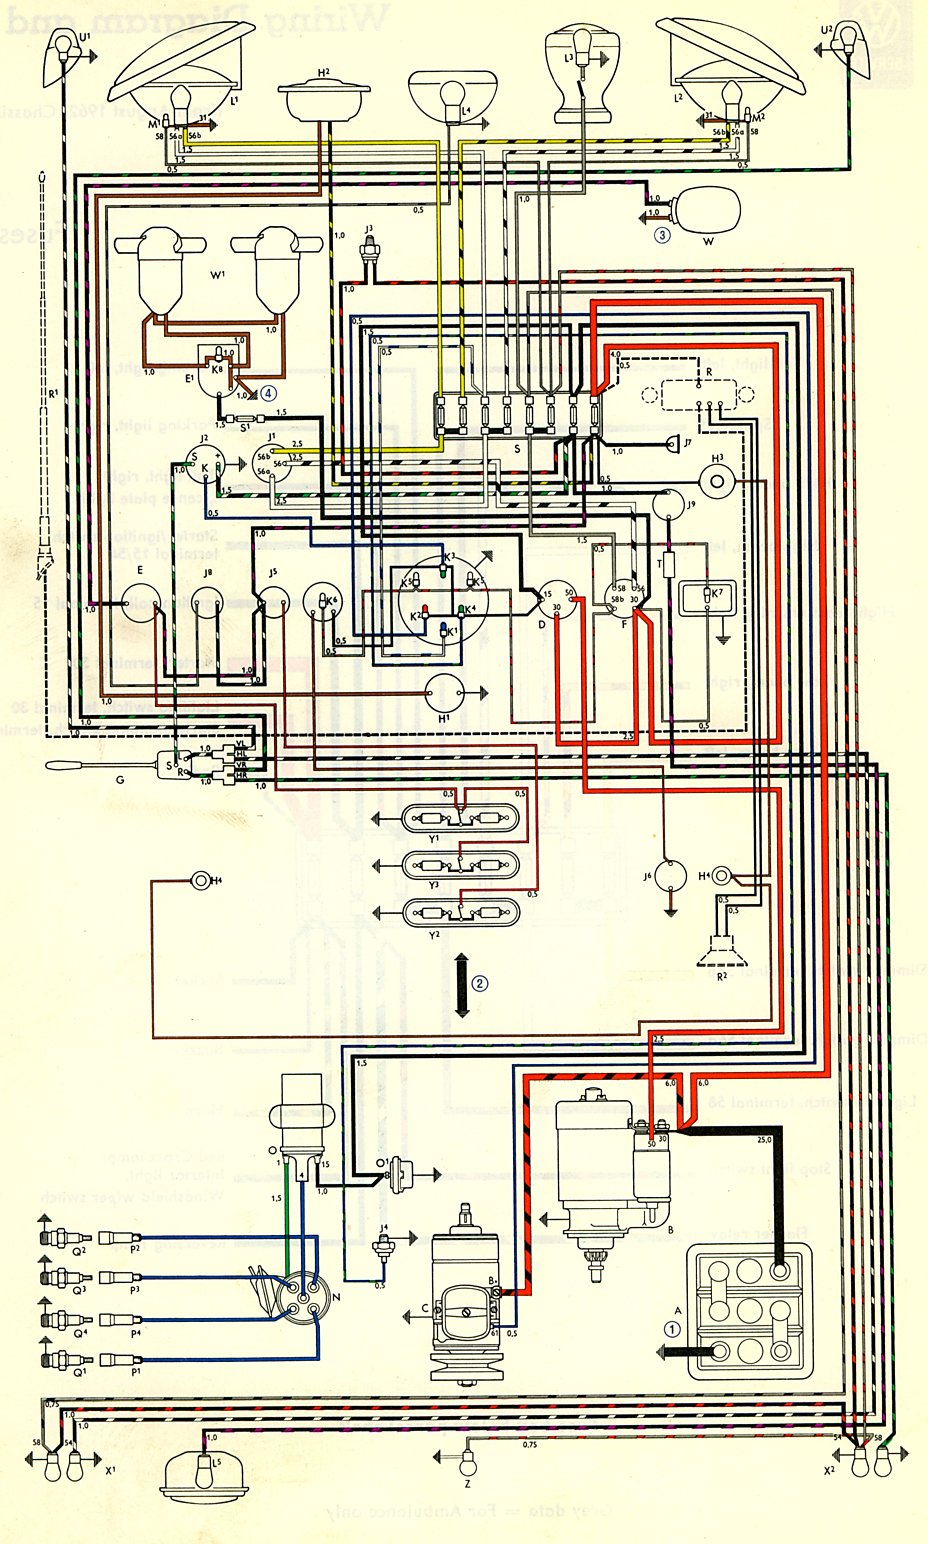 bus_63 1963 bus wiring diagram (usa) thegoldenbug com 1957 vw beetle wiring diagram at bayanpartner.co